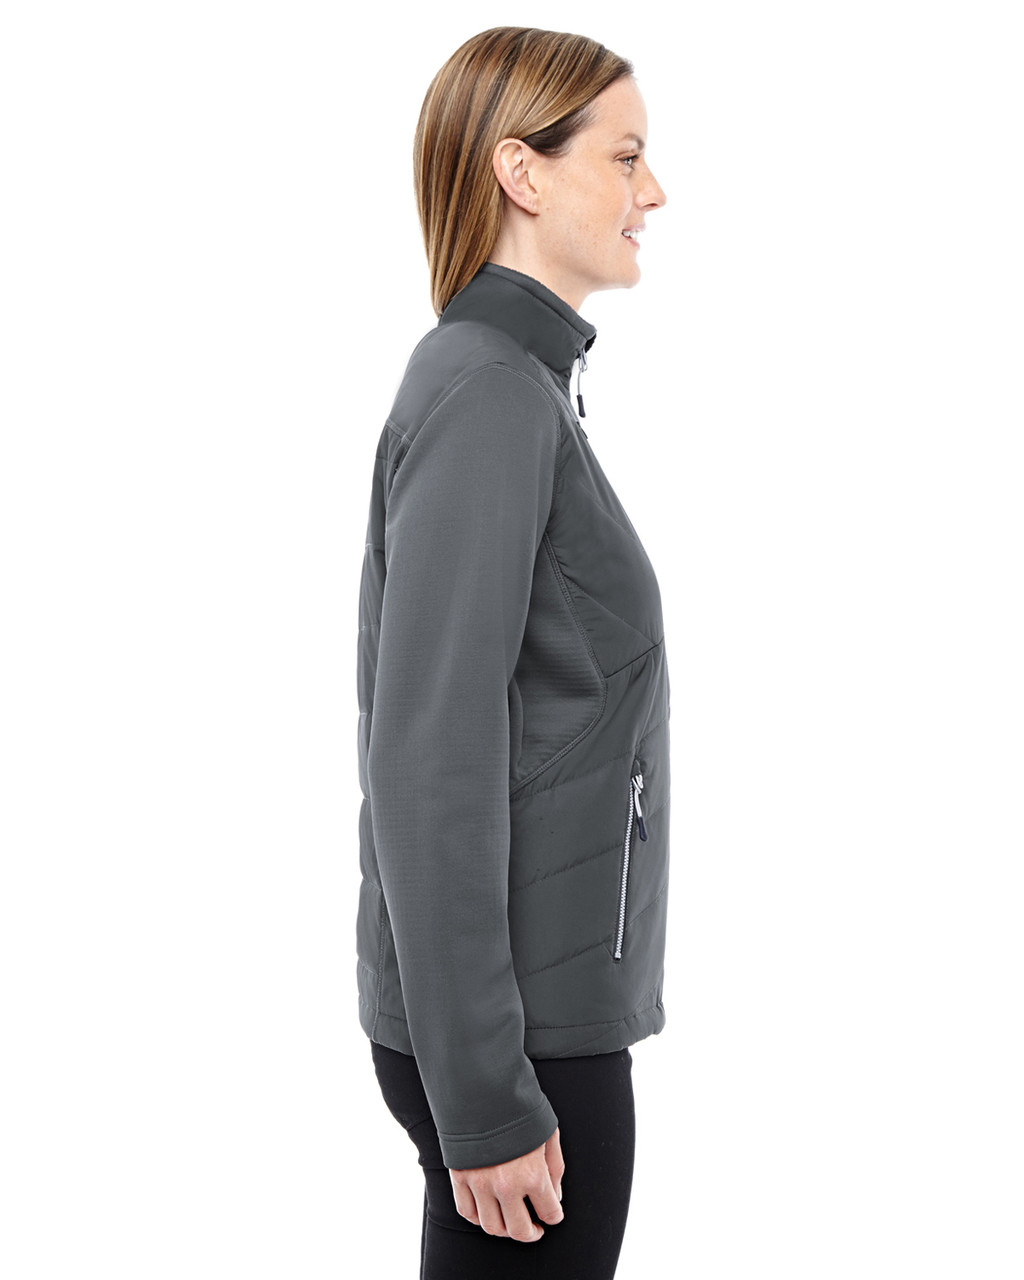 Carbon/Carbon - side 78809 North End Sport Red Quantum Interactive Hybrid Insulated Jacket